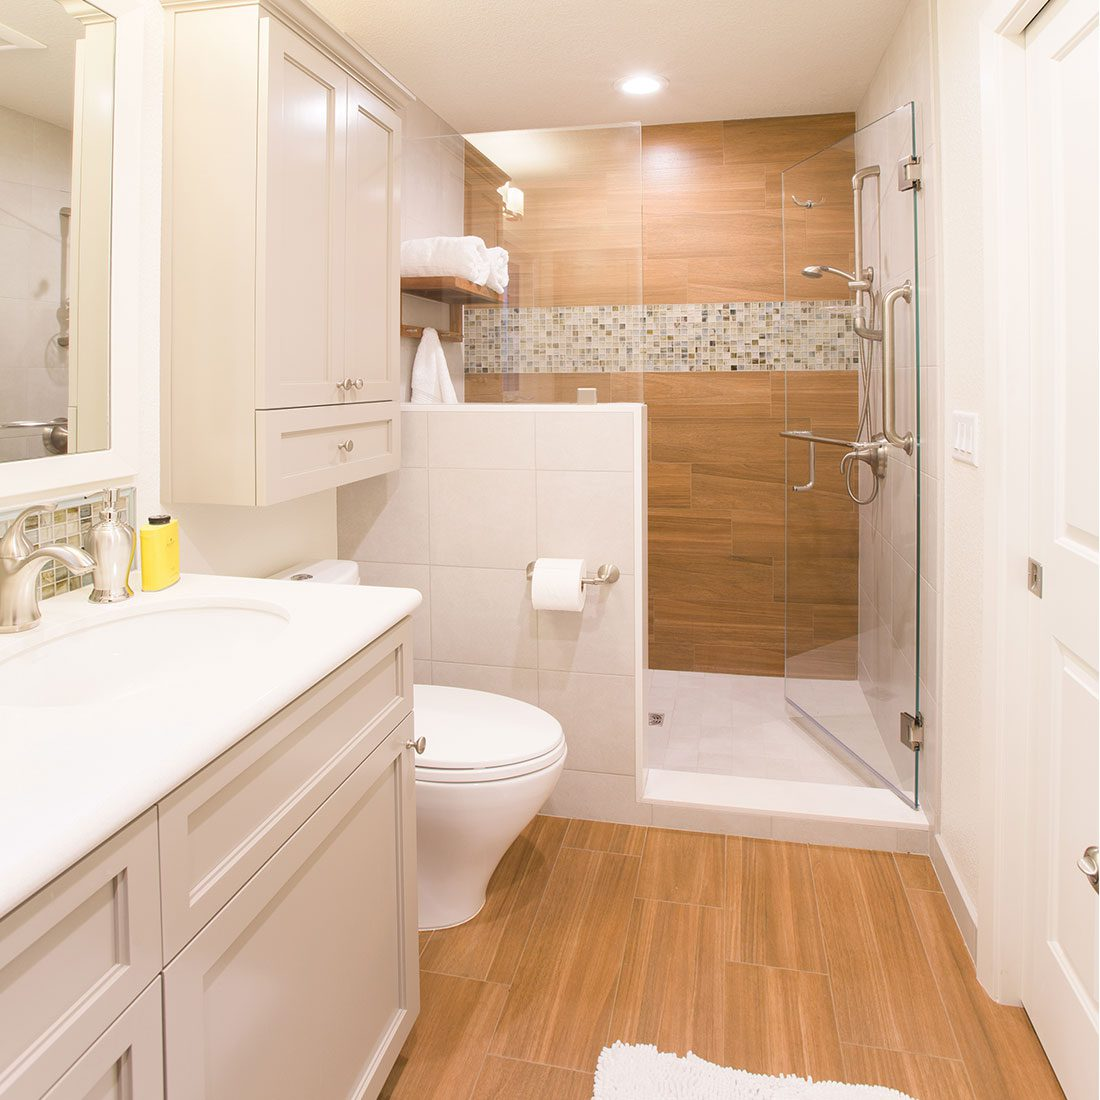 Bathroom Remodeling Checklist